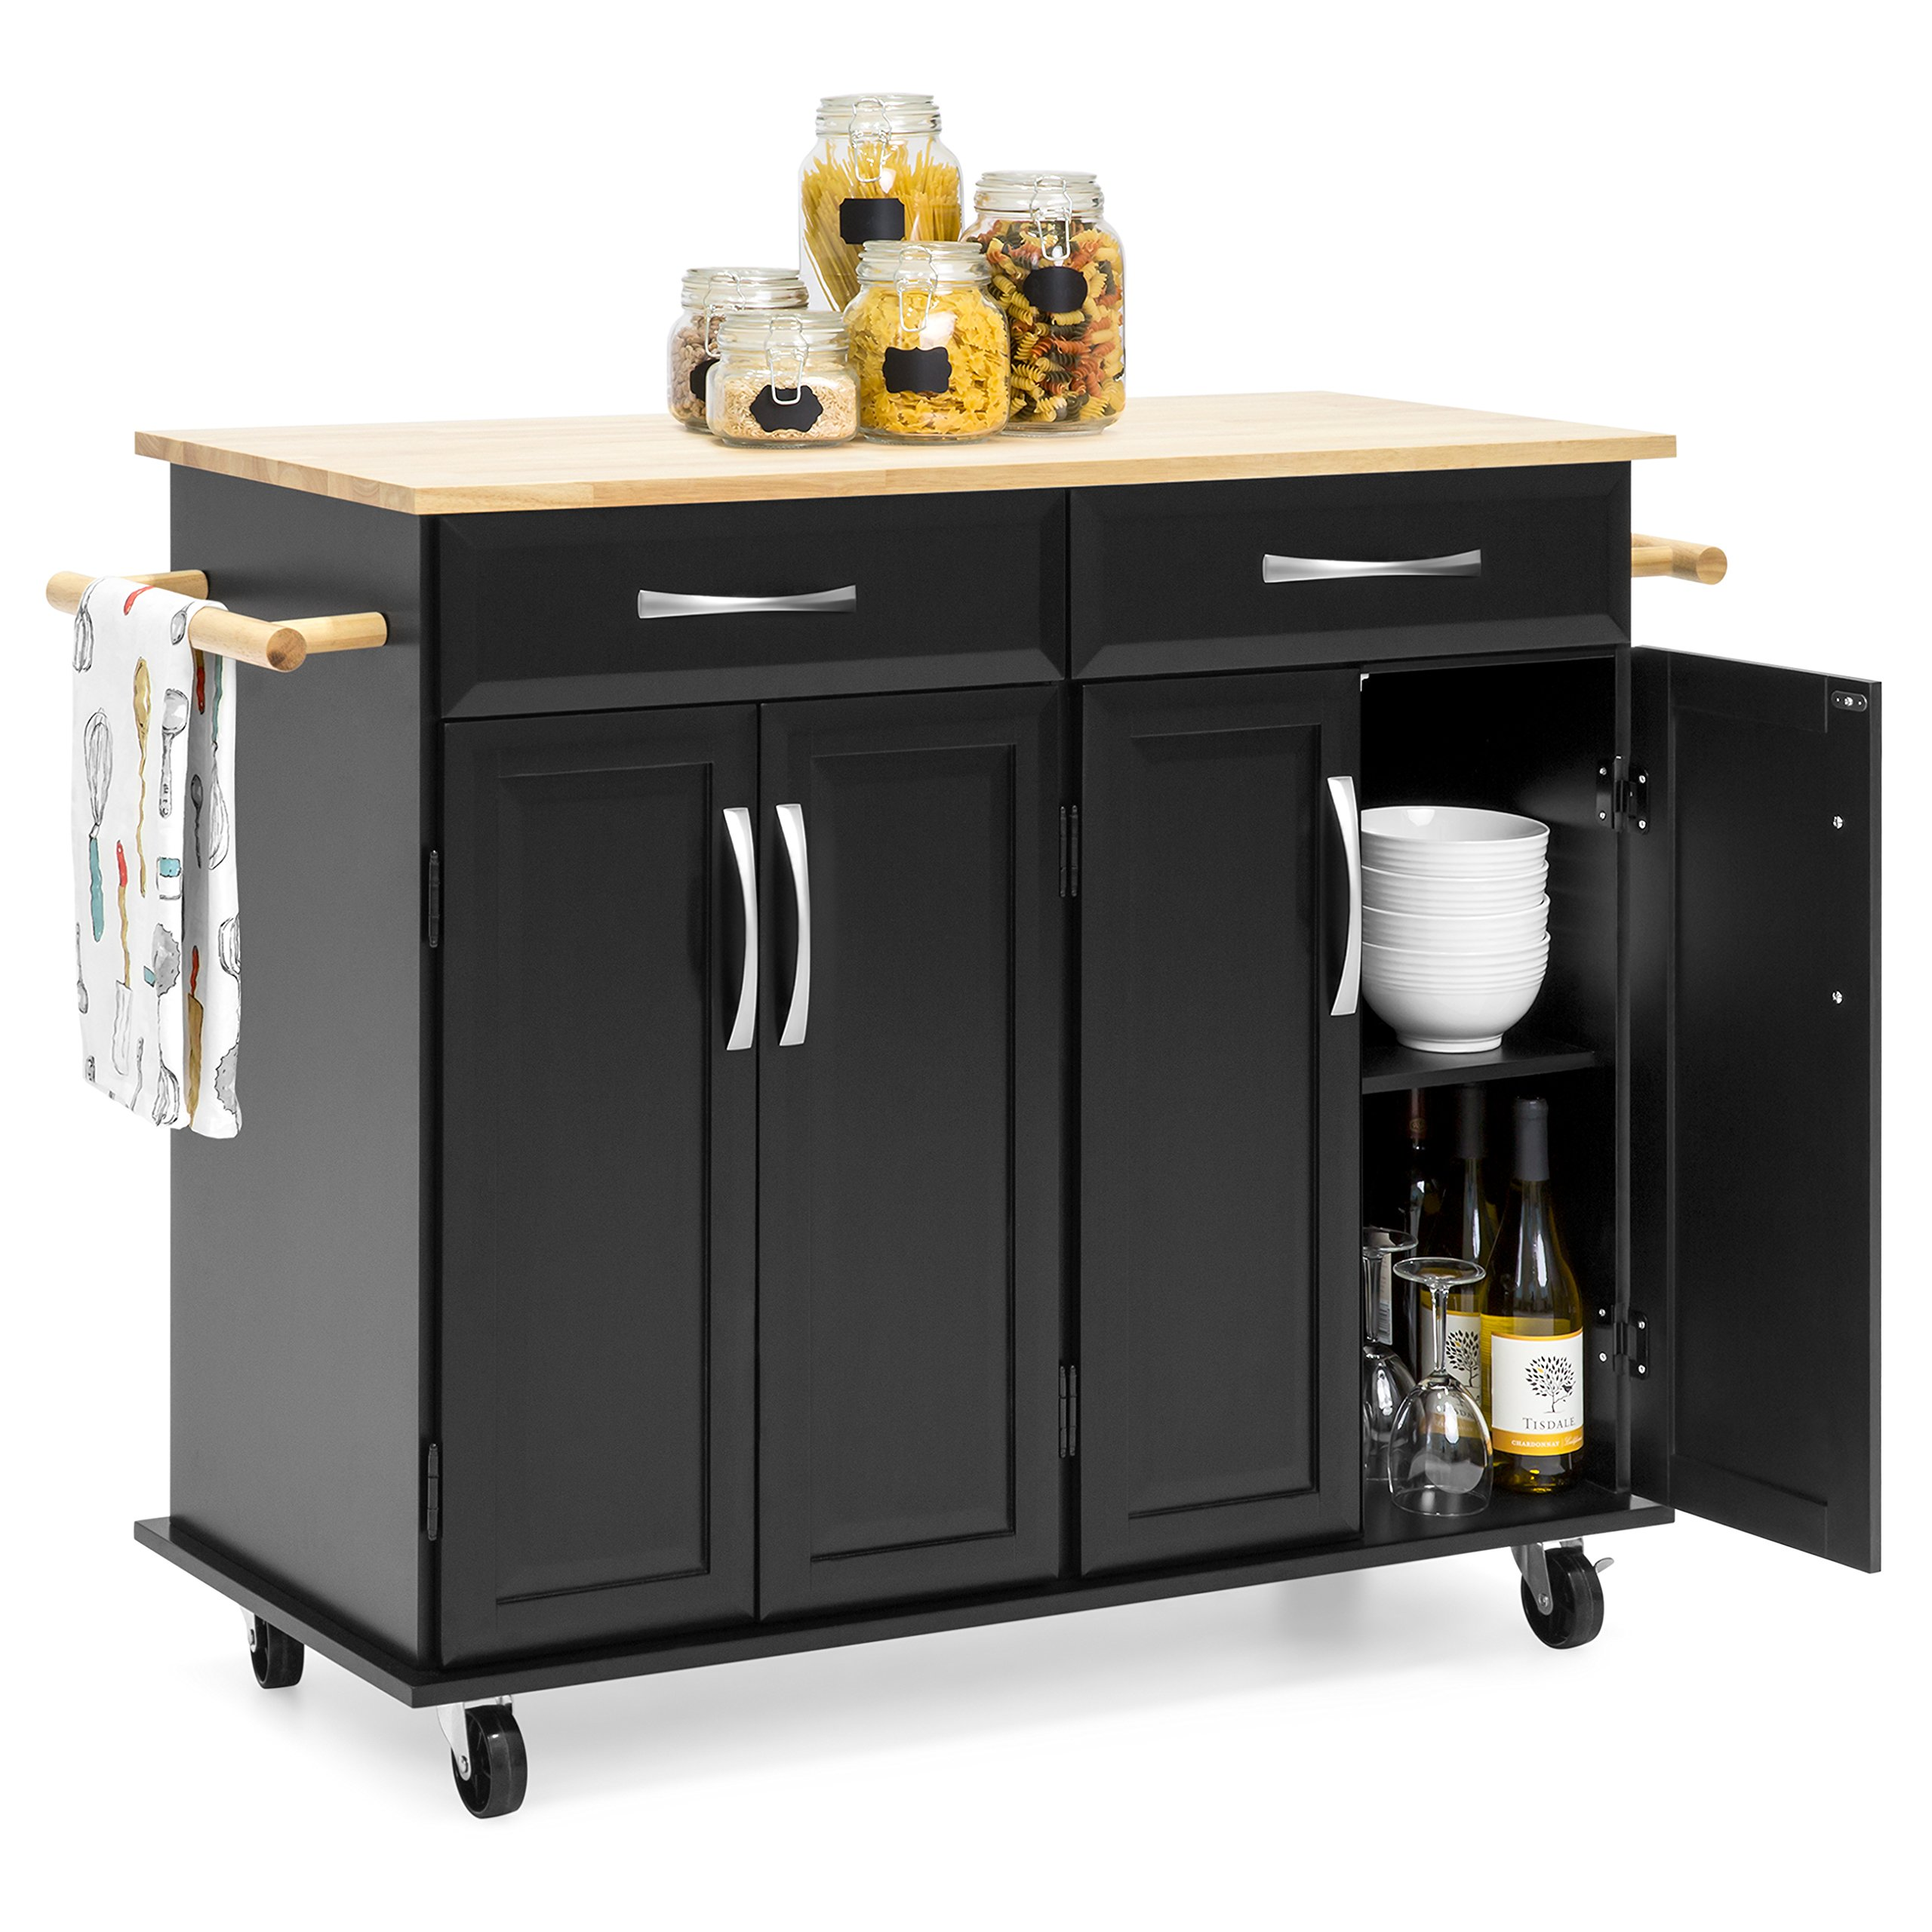 Best Choice Products Portable Kitchen Island Cart w/Wood Top, 2 Towel Racks, Drawers & Cabinets w/Adjustable Shelves